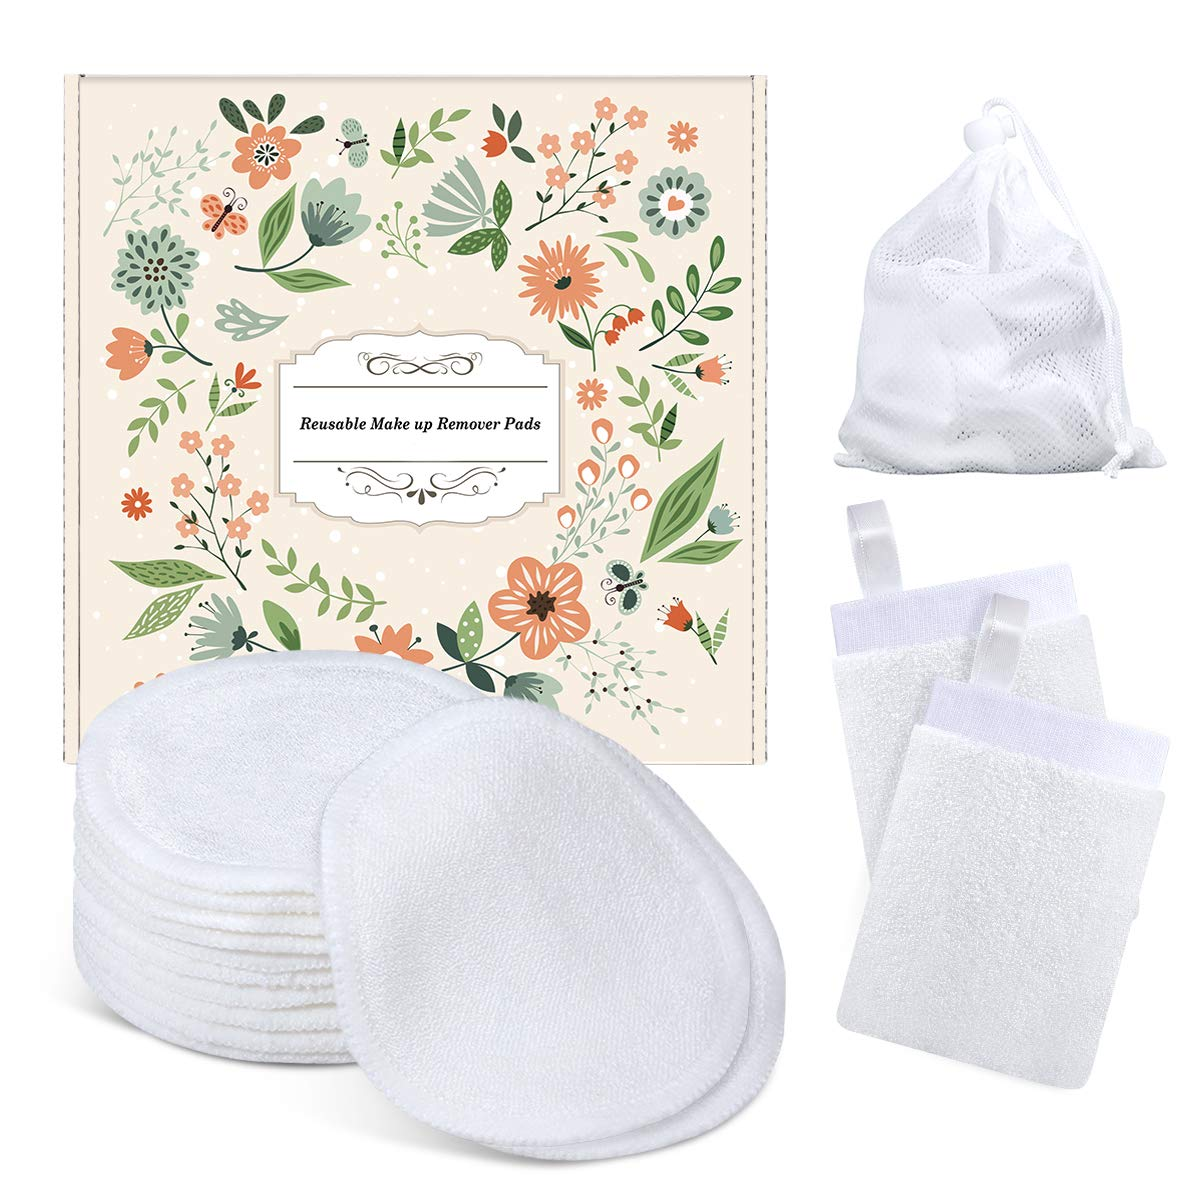 Makeup Remover Pads, Reusable Cotton Pads Face Cleansing Wipes Organic Bamboo Cotton Rounds, Christmas Stocking Stuffers Gift for Women Mom Wife Teen Sister Girl Friend